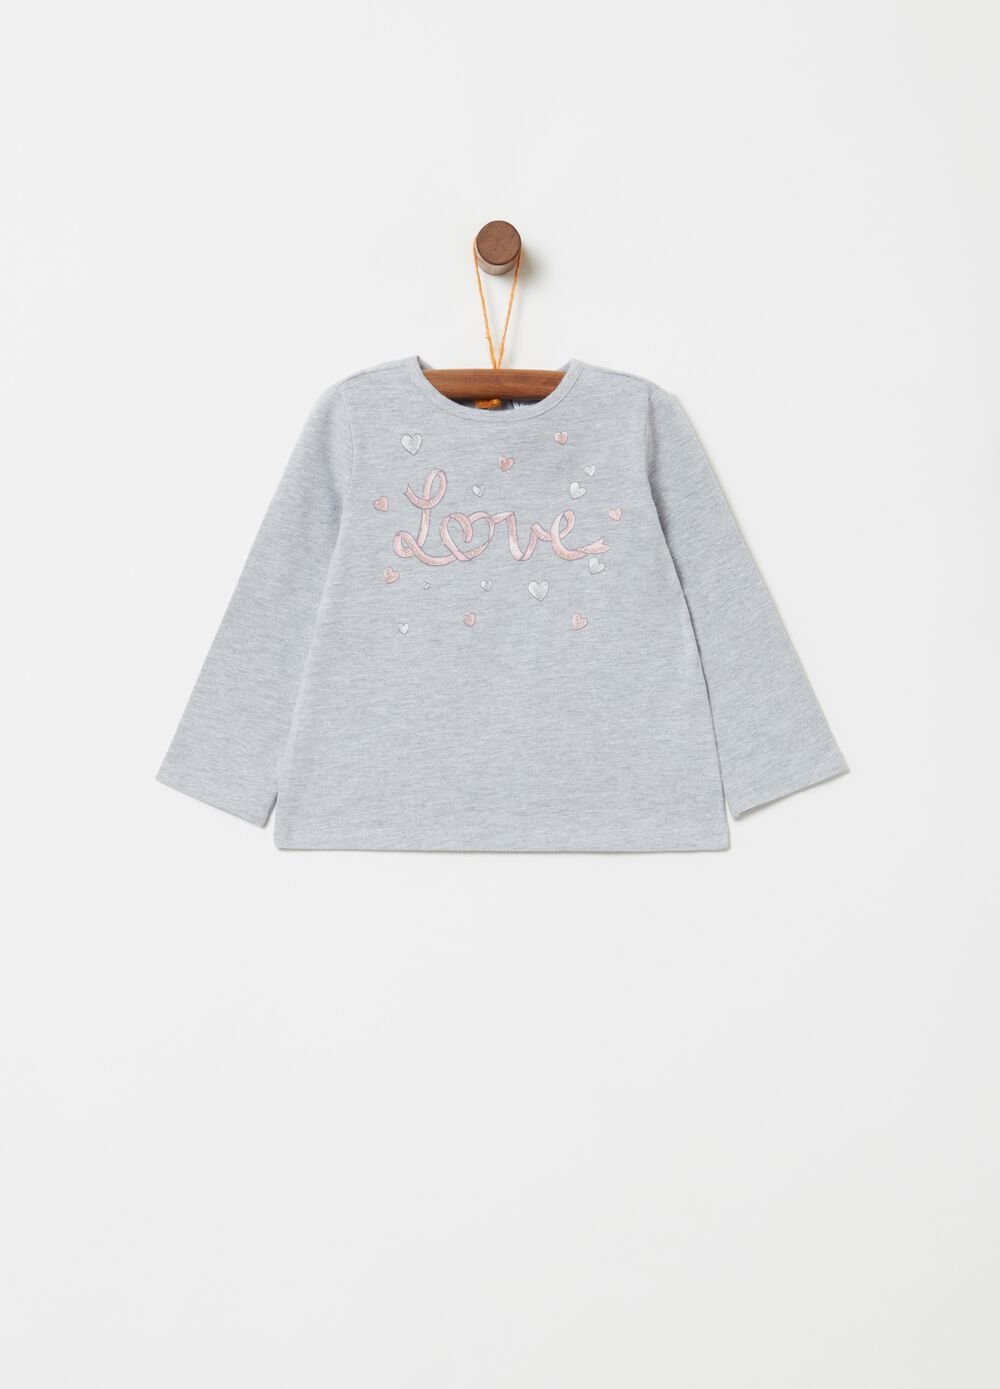 Mélange T-shirt with lettering and hearts print